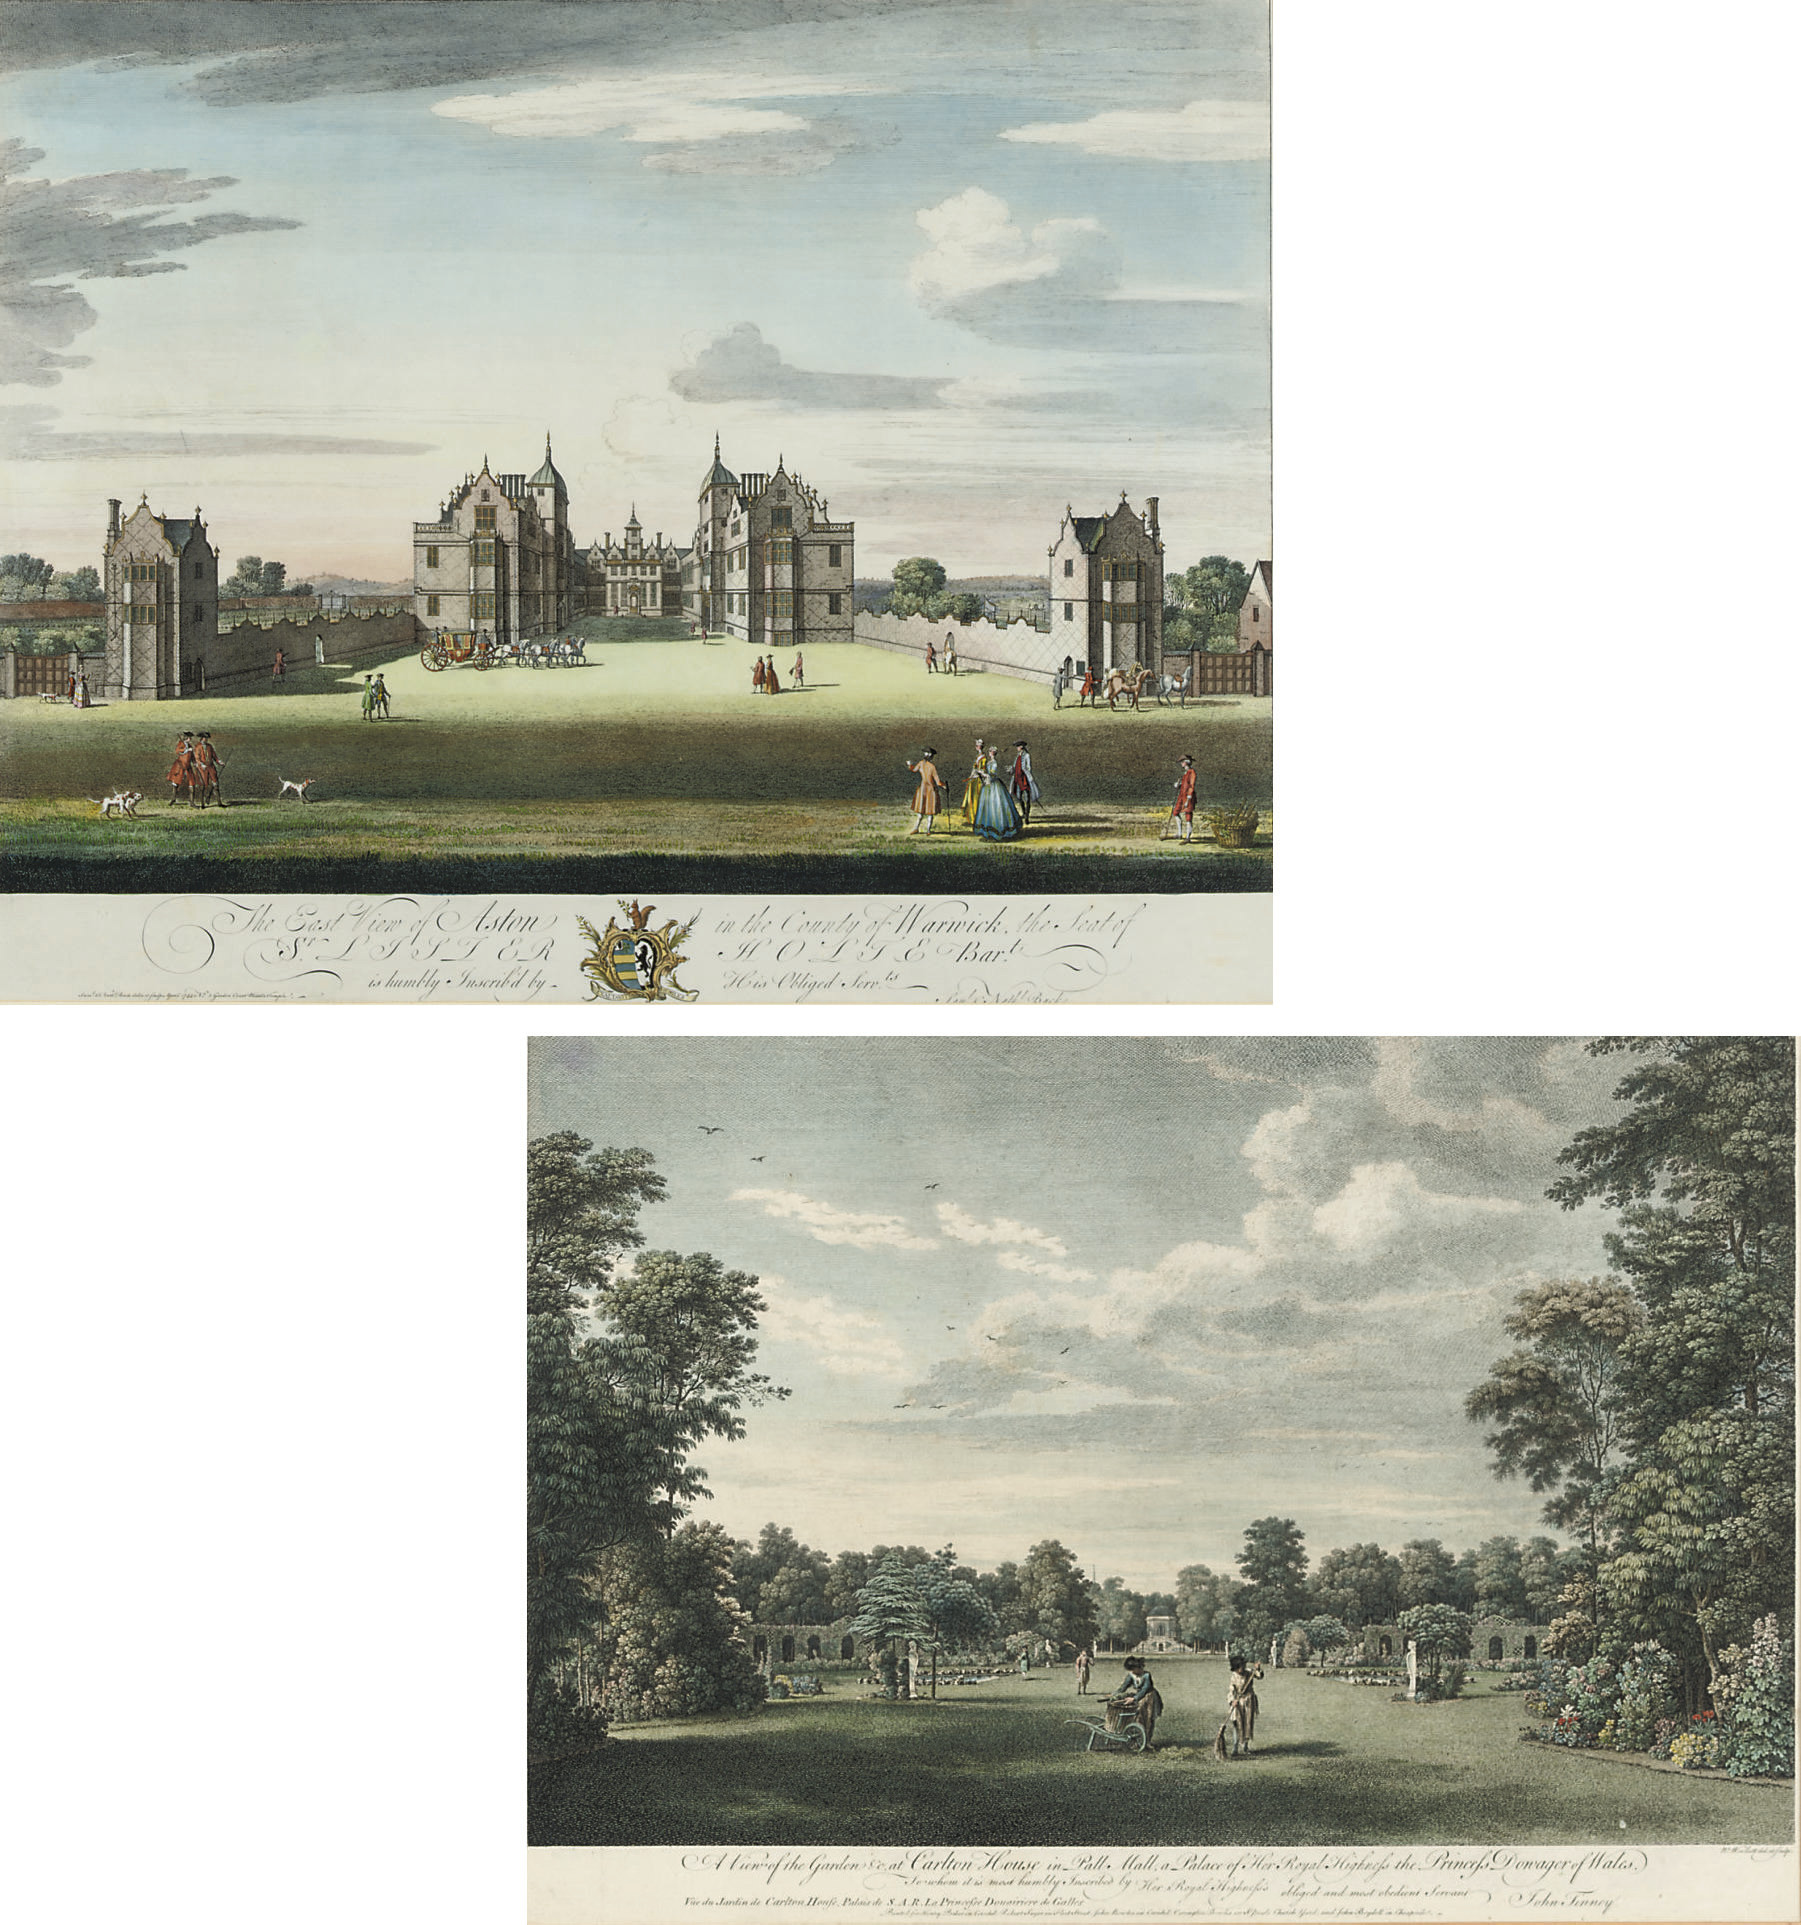 A View of Aston in the county of Warwick, the seat of Sir Lister Holte